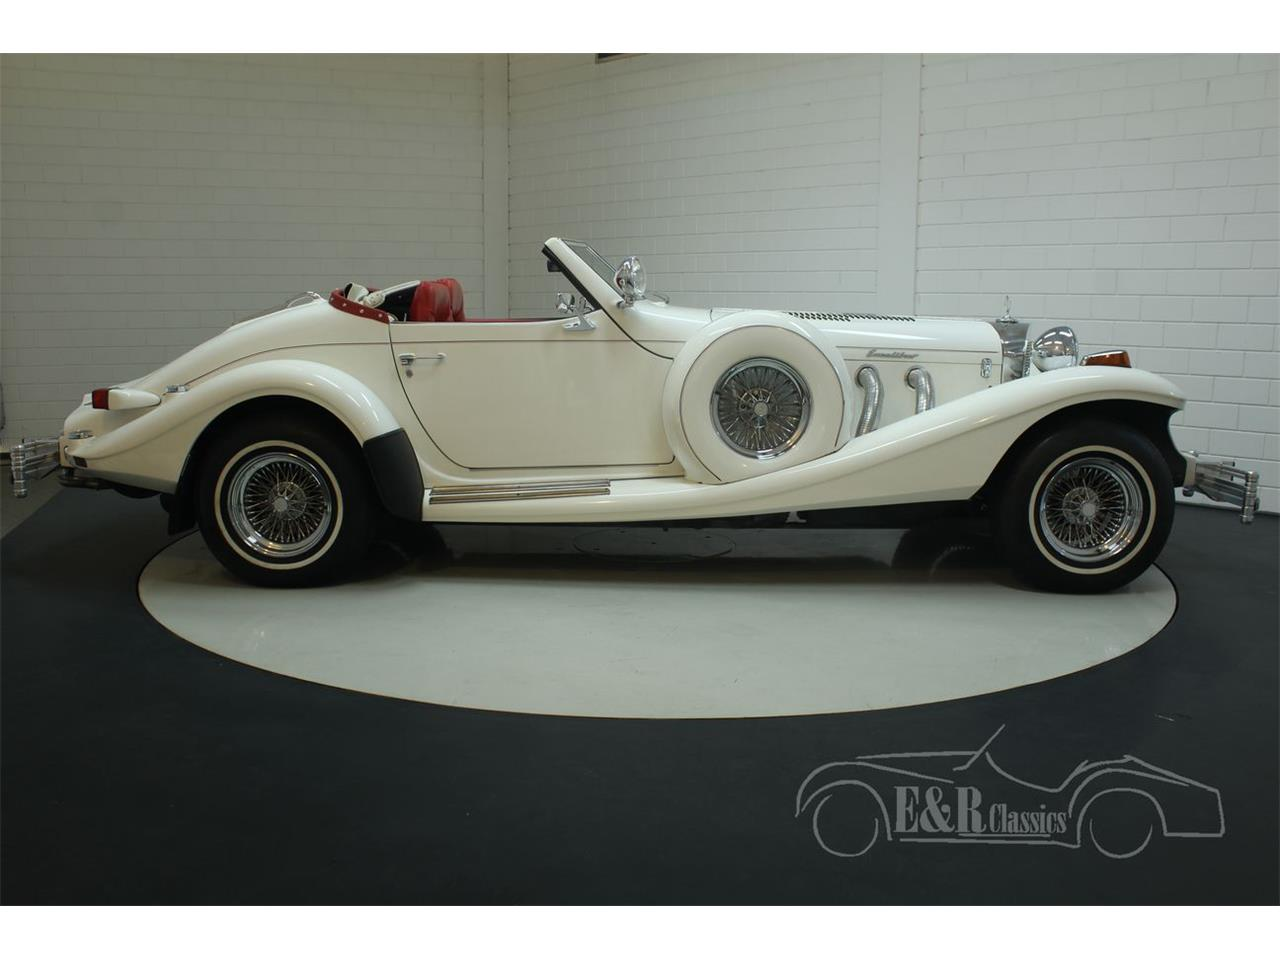 Large Picture of 1982 Excalibur Series IV Phaeton - $78,450.00 - Q3GF